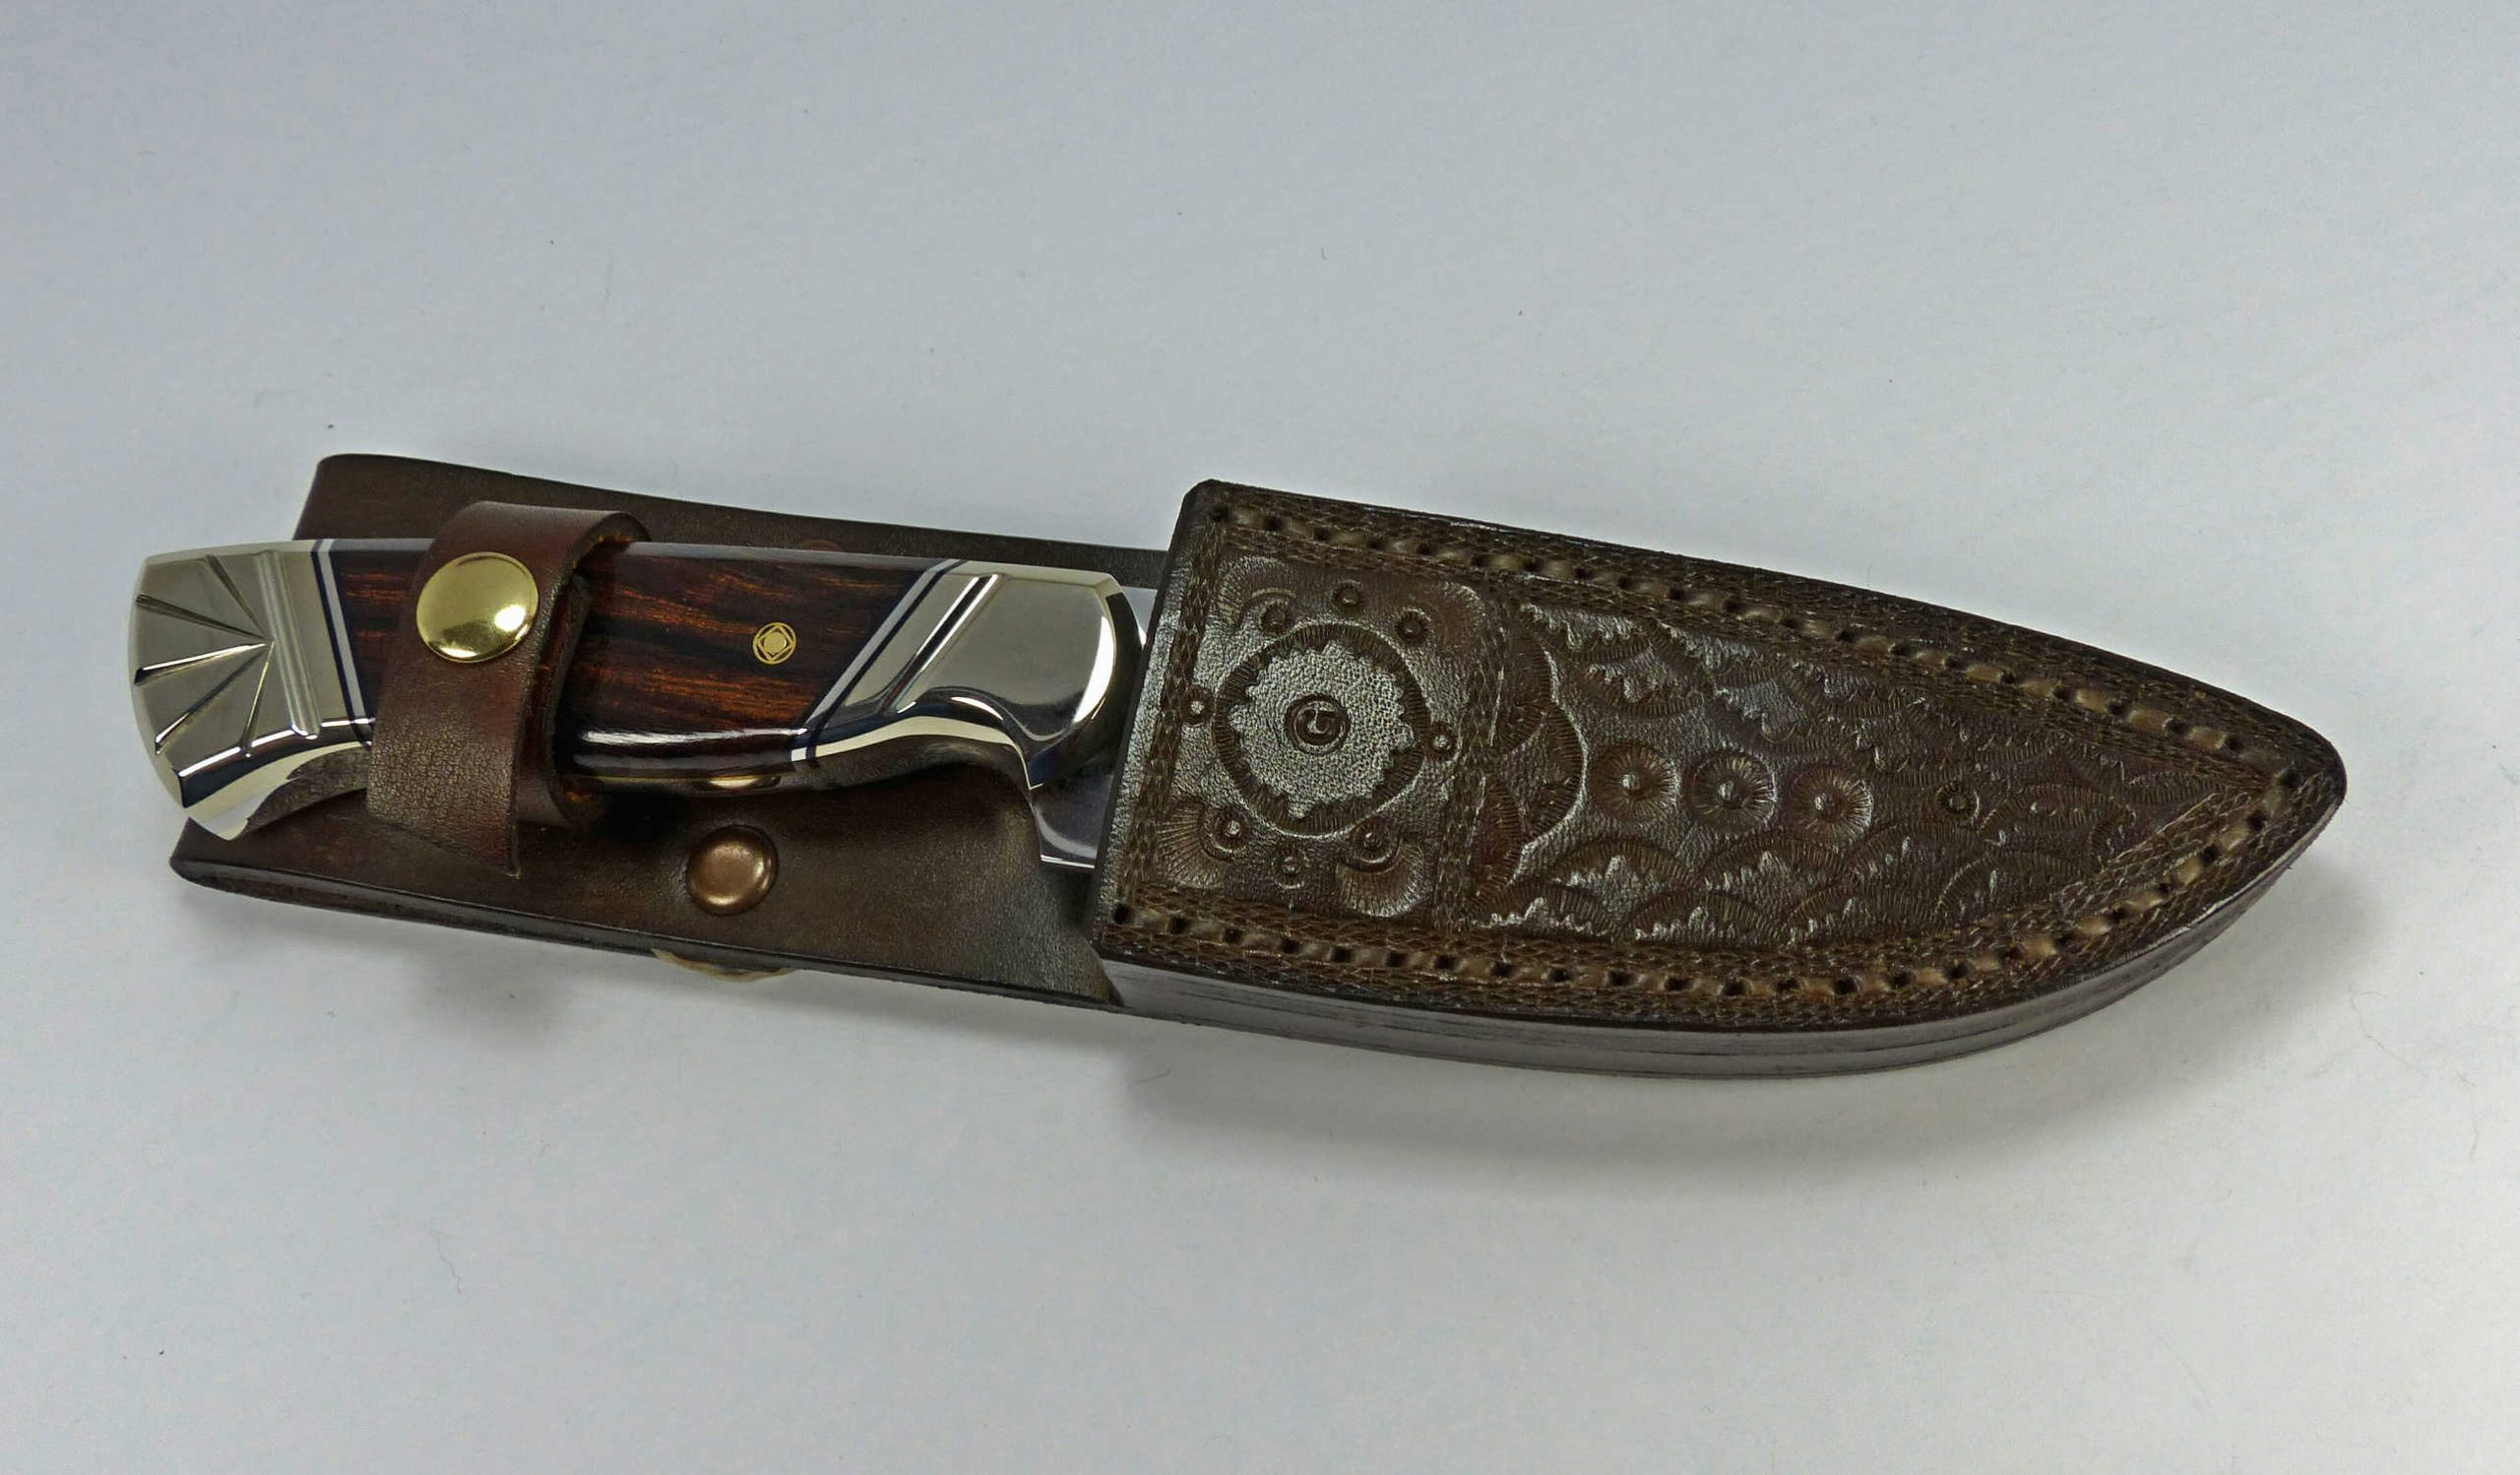 S1 - Arizona Desert Ironwood knife with custom fitted and welted leather sheath